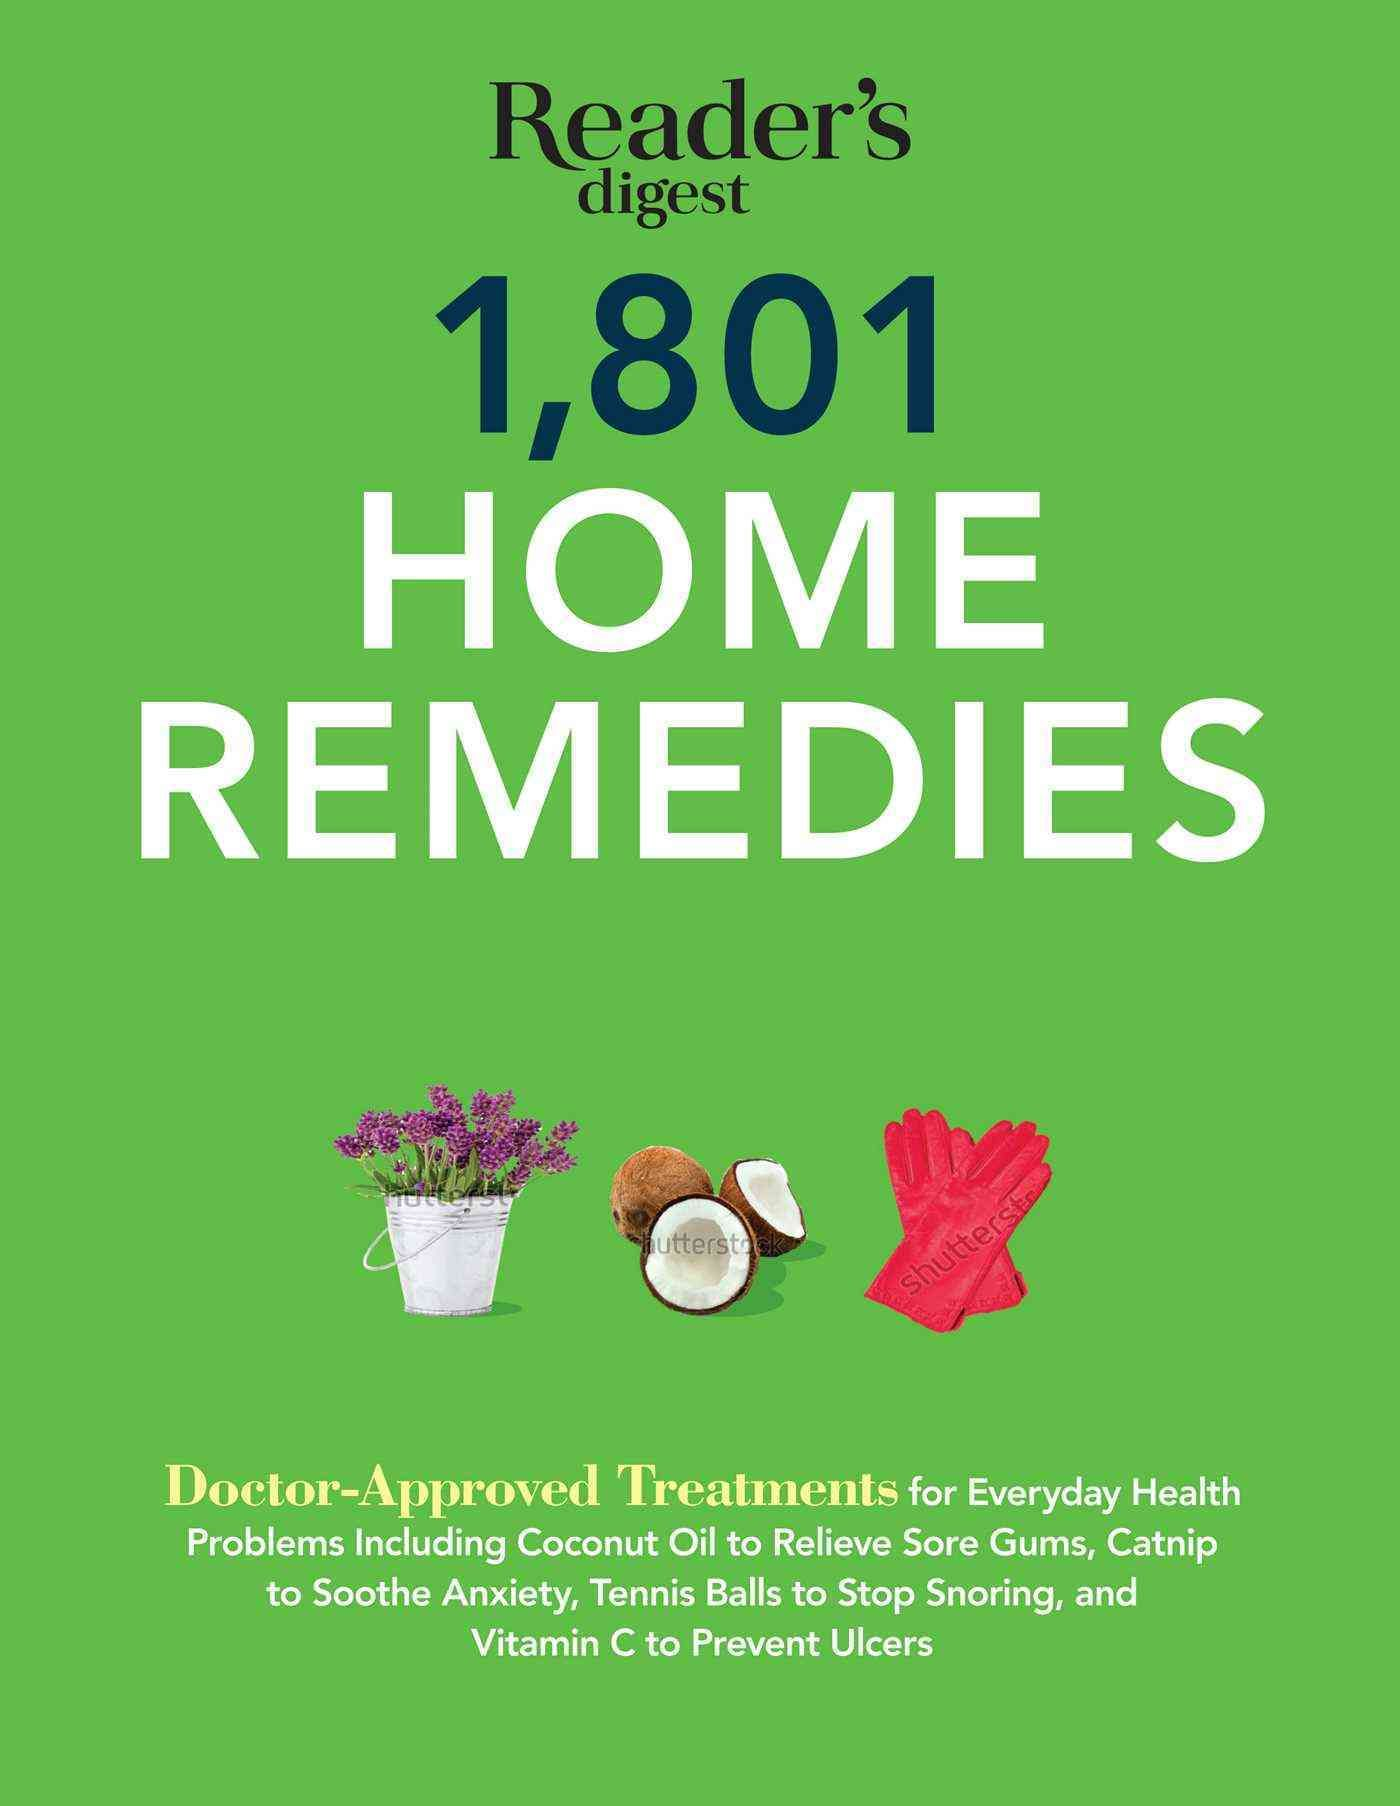 1801 home remedies doctor approved treatments for everyday health1801 home remedies doctor approved treatments for everyday health problems, including